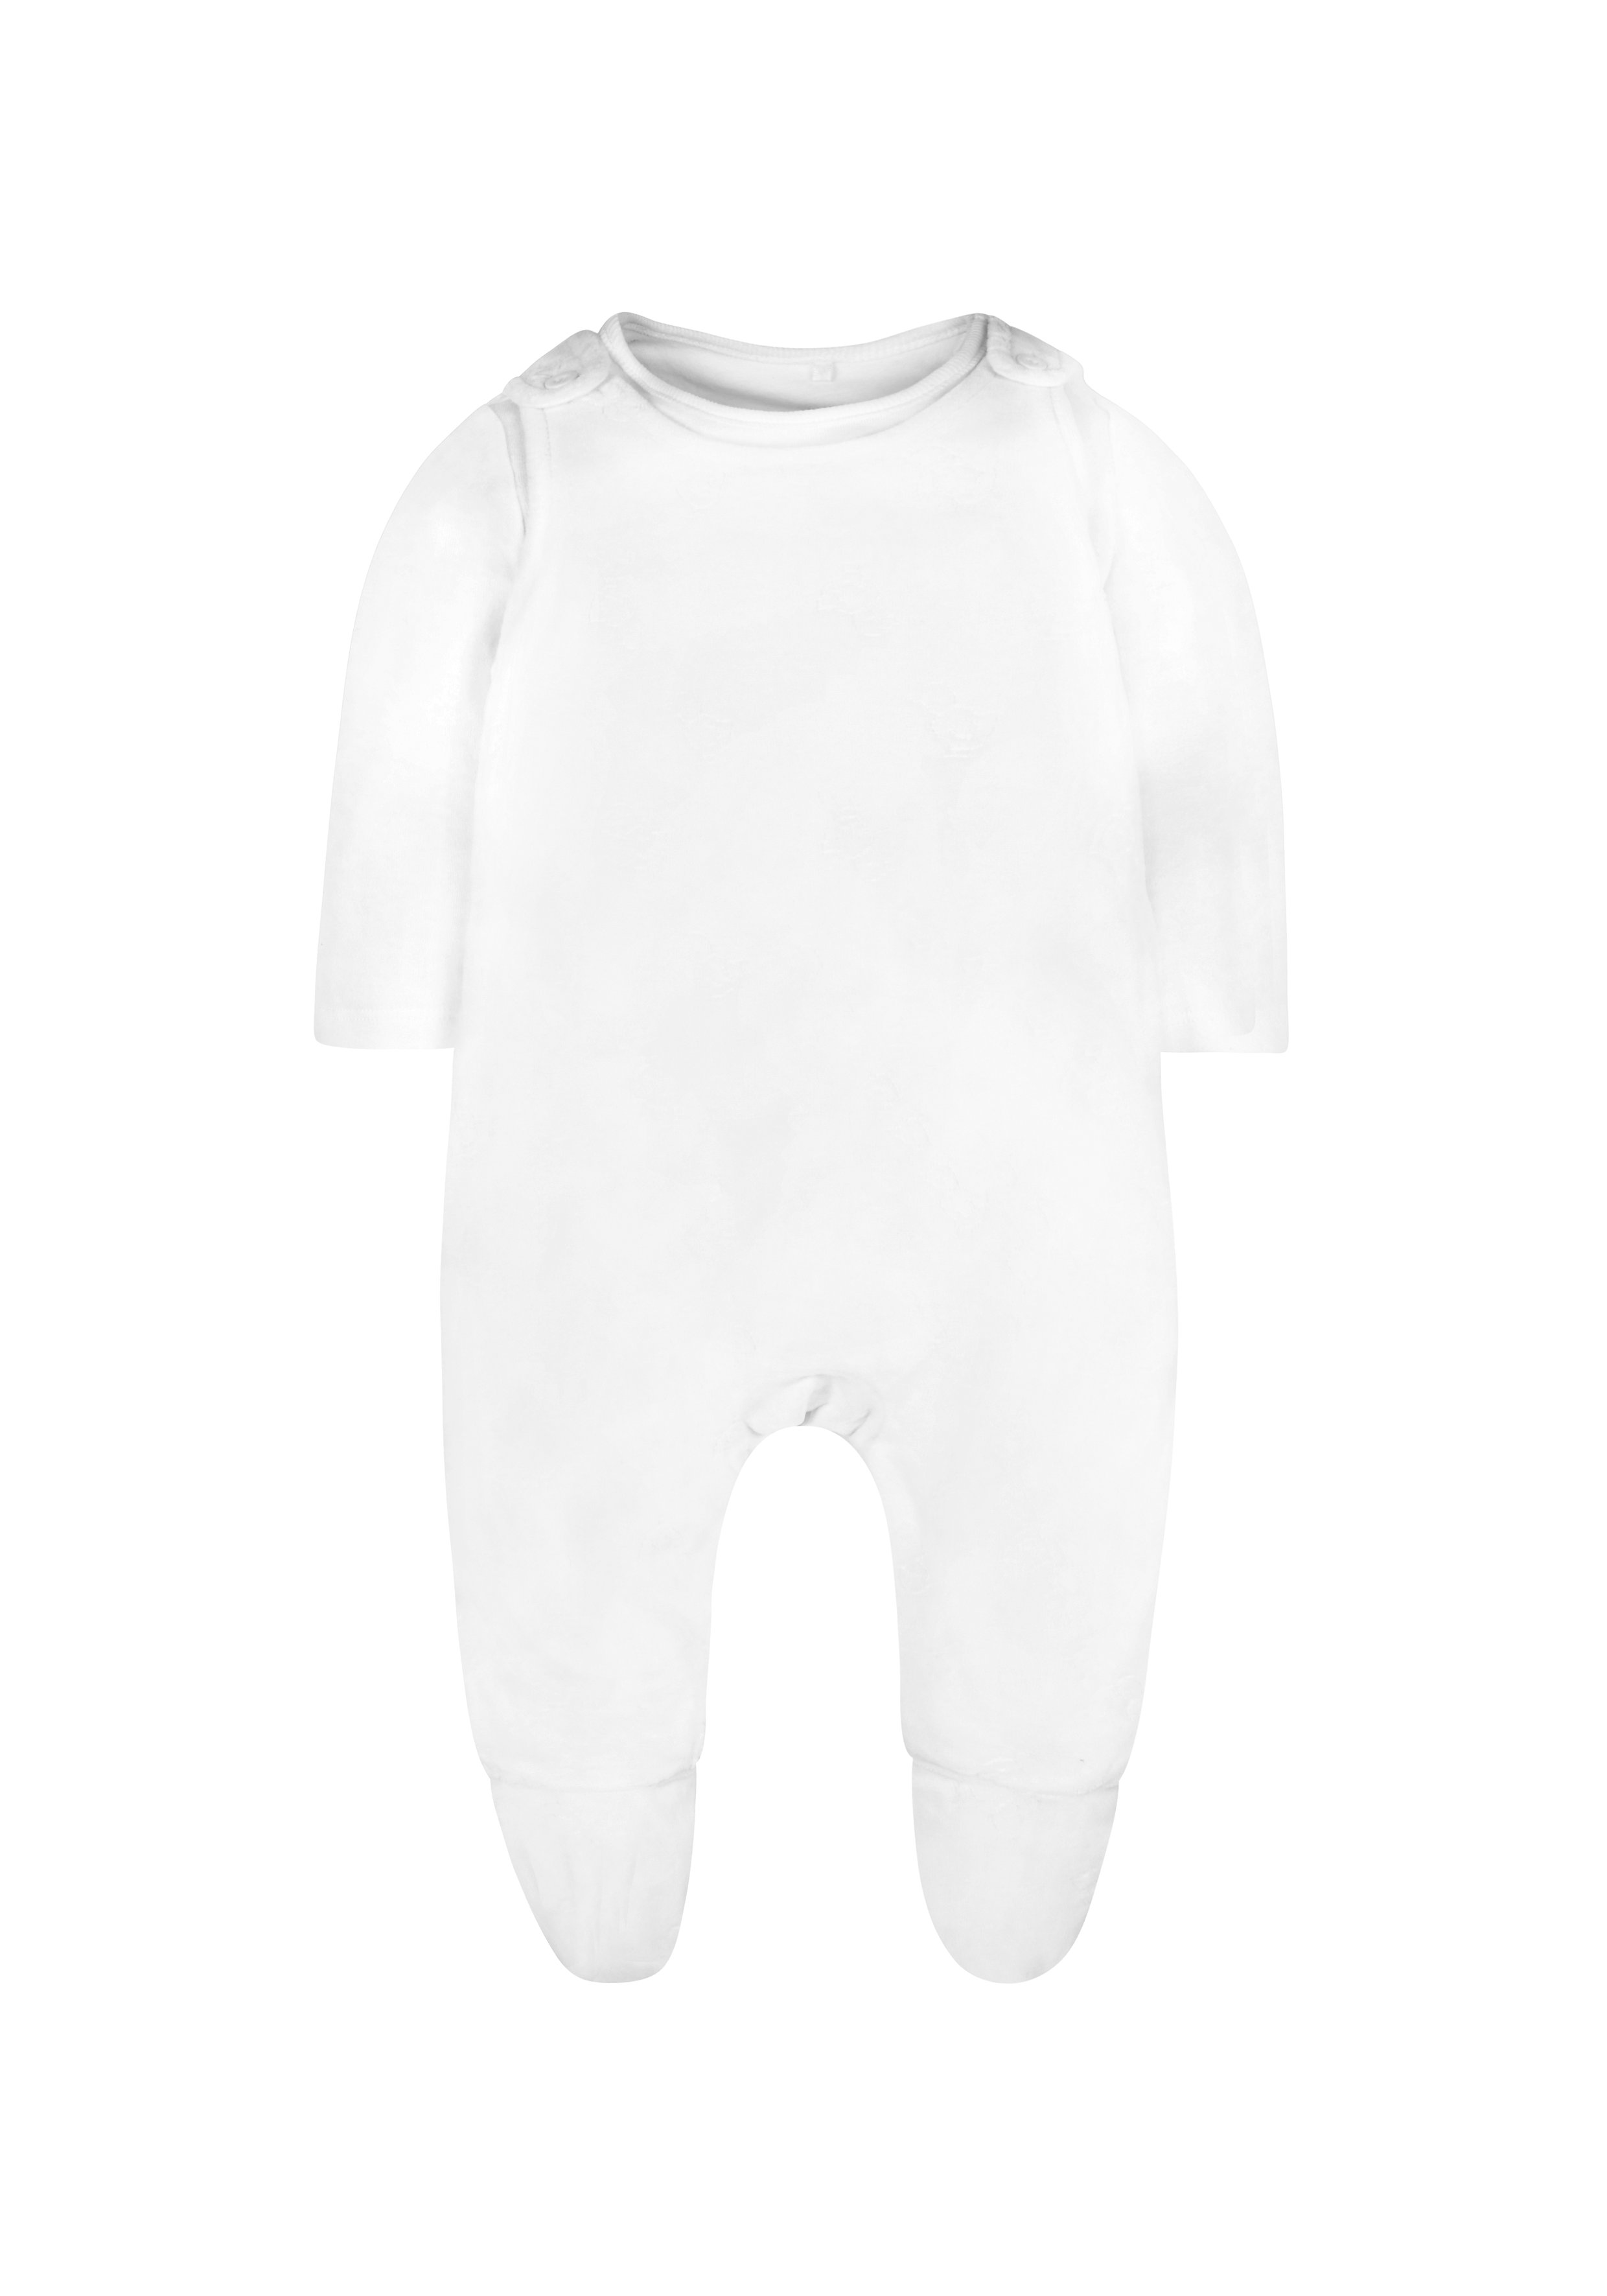 Mothercare | Unisex My First Dungarees And Bodysuit Set - White